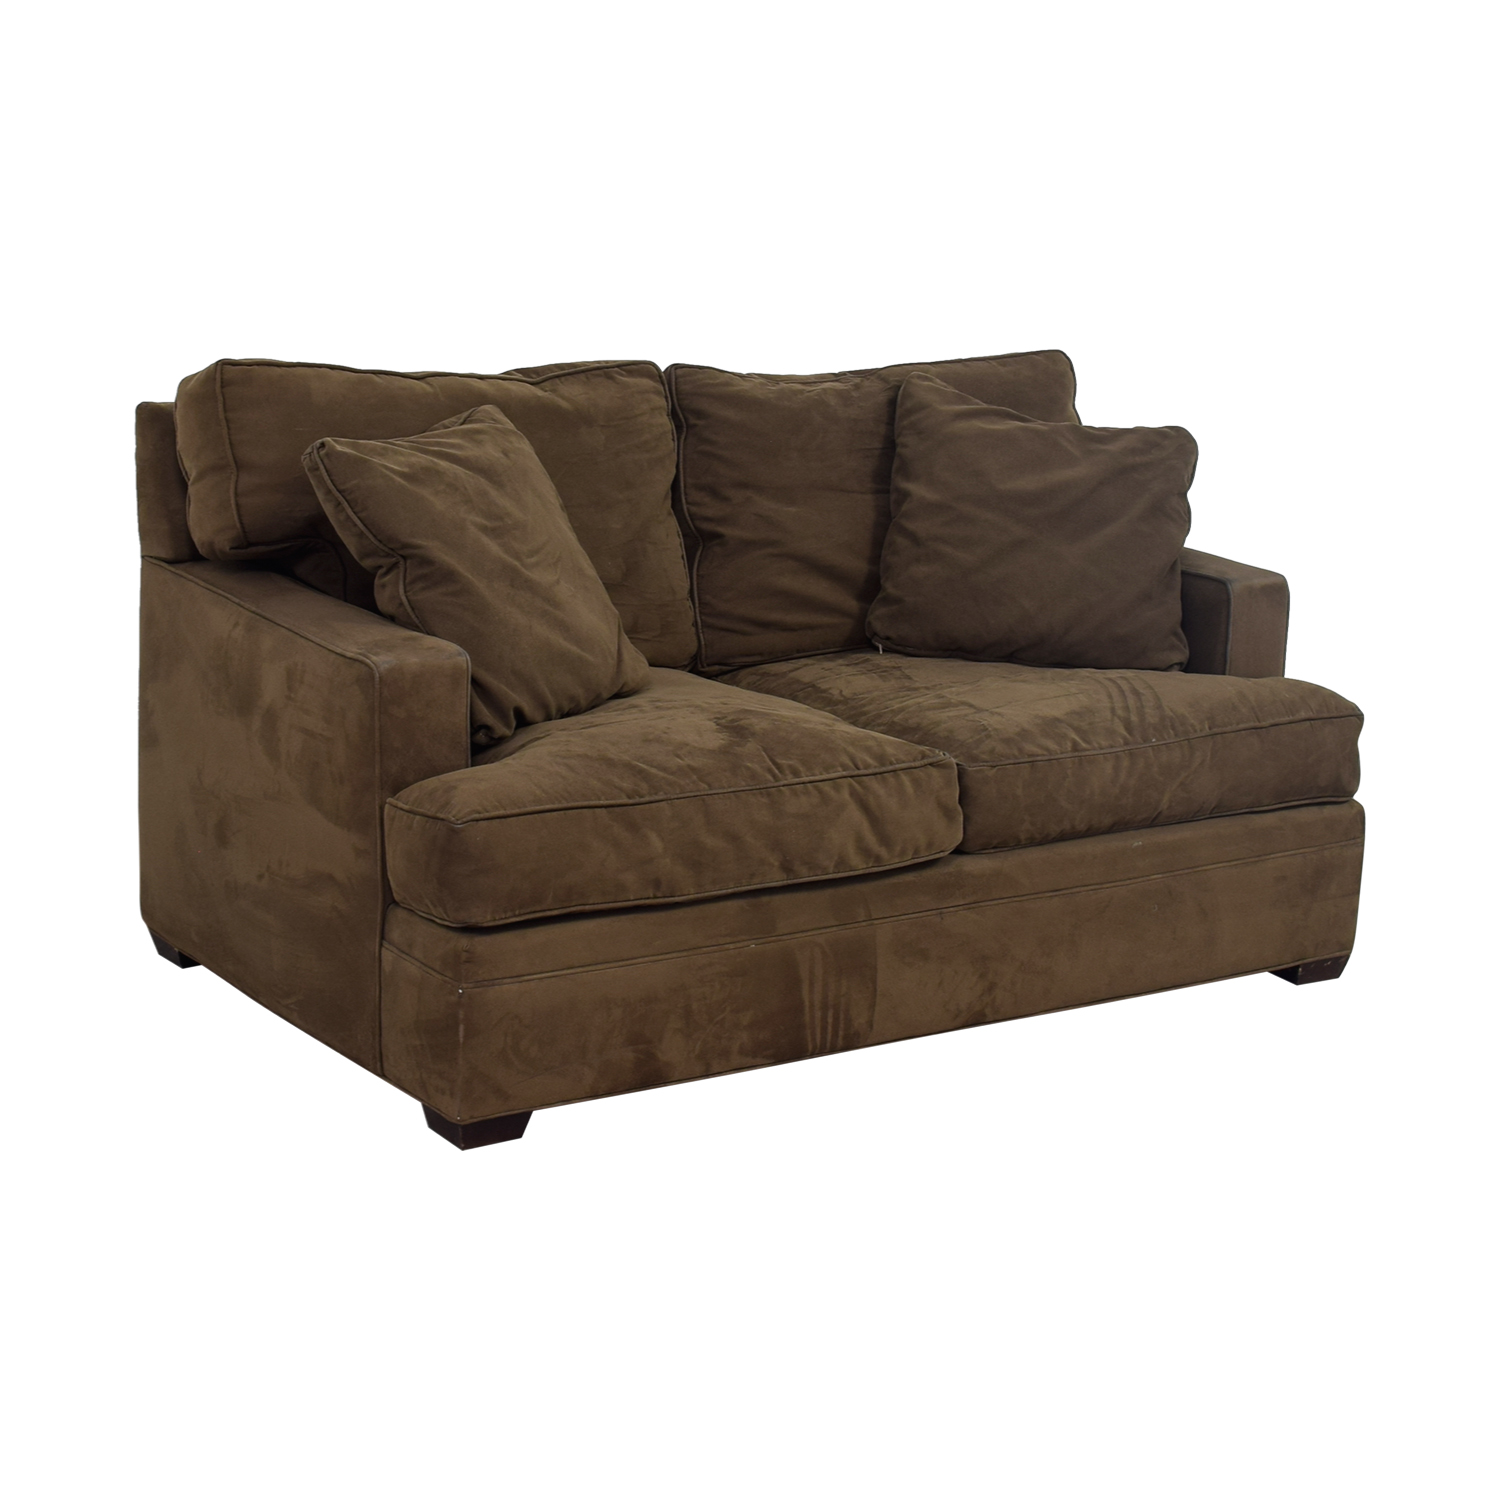 57 Off Crate Barrel Crate Barrel Brown Two Cushion